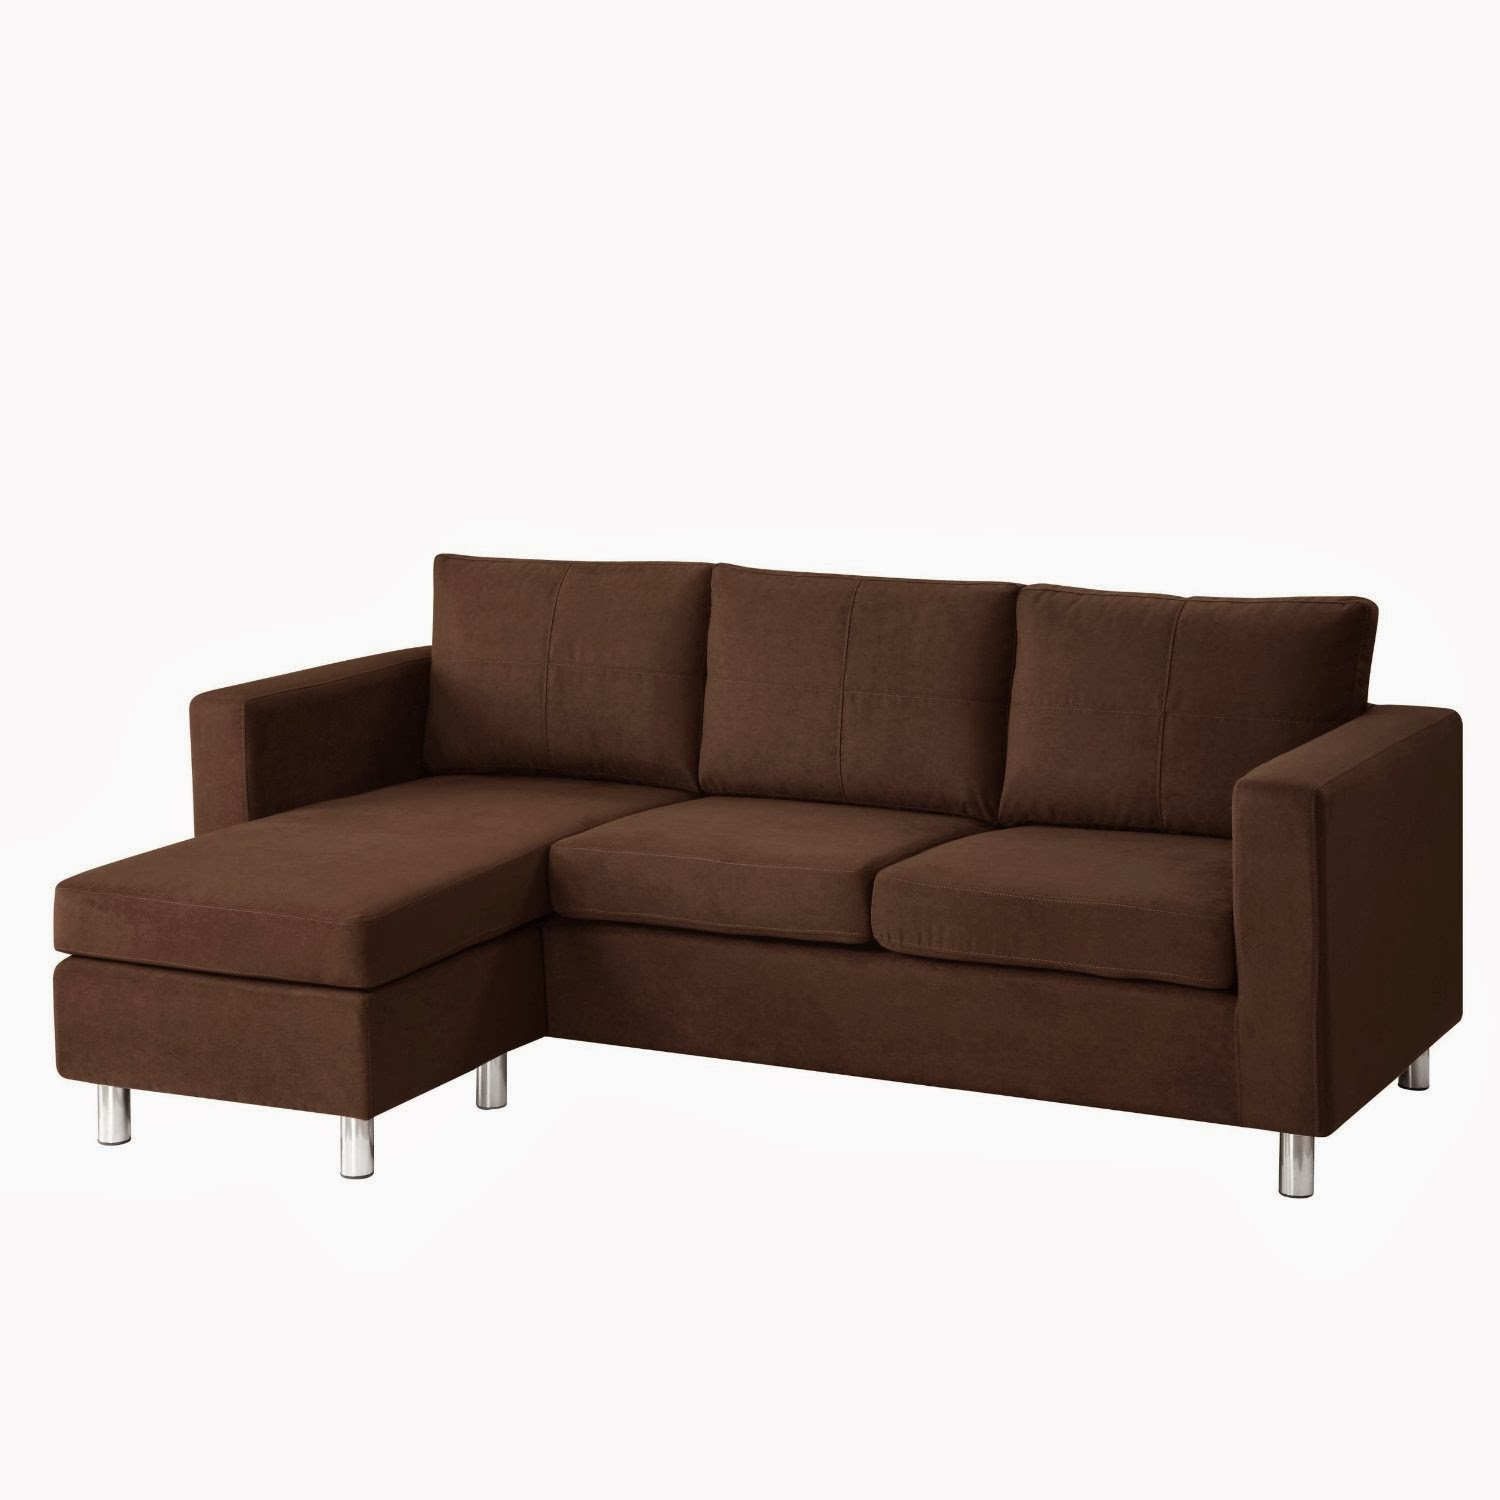 Small sectional sofas reviews small sectional sofa with for Brown sectional sofa with chaise